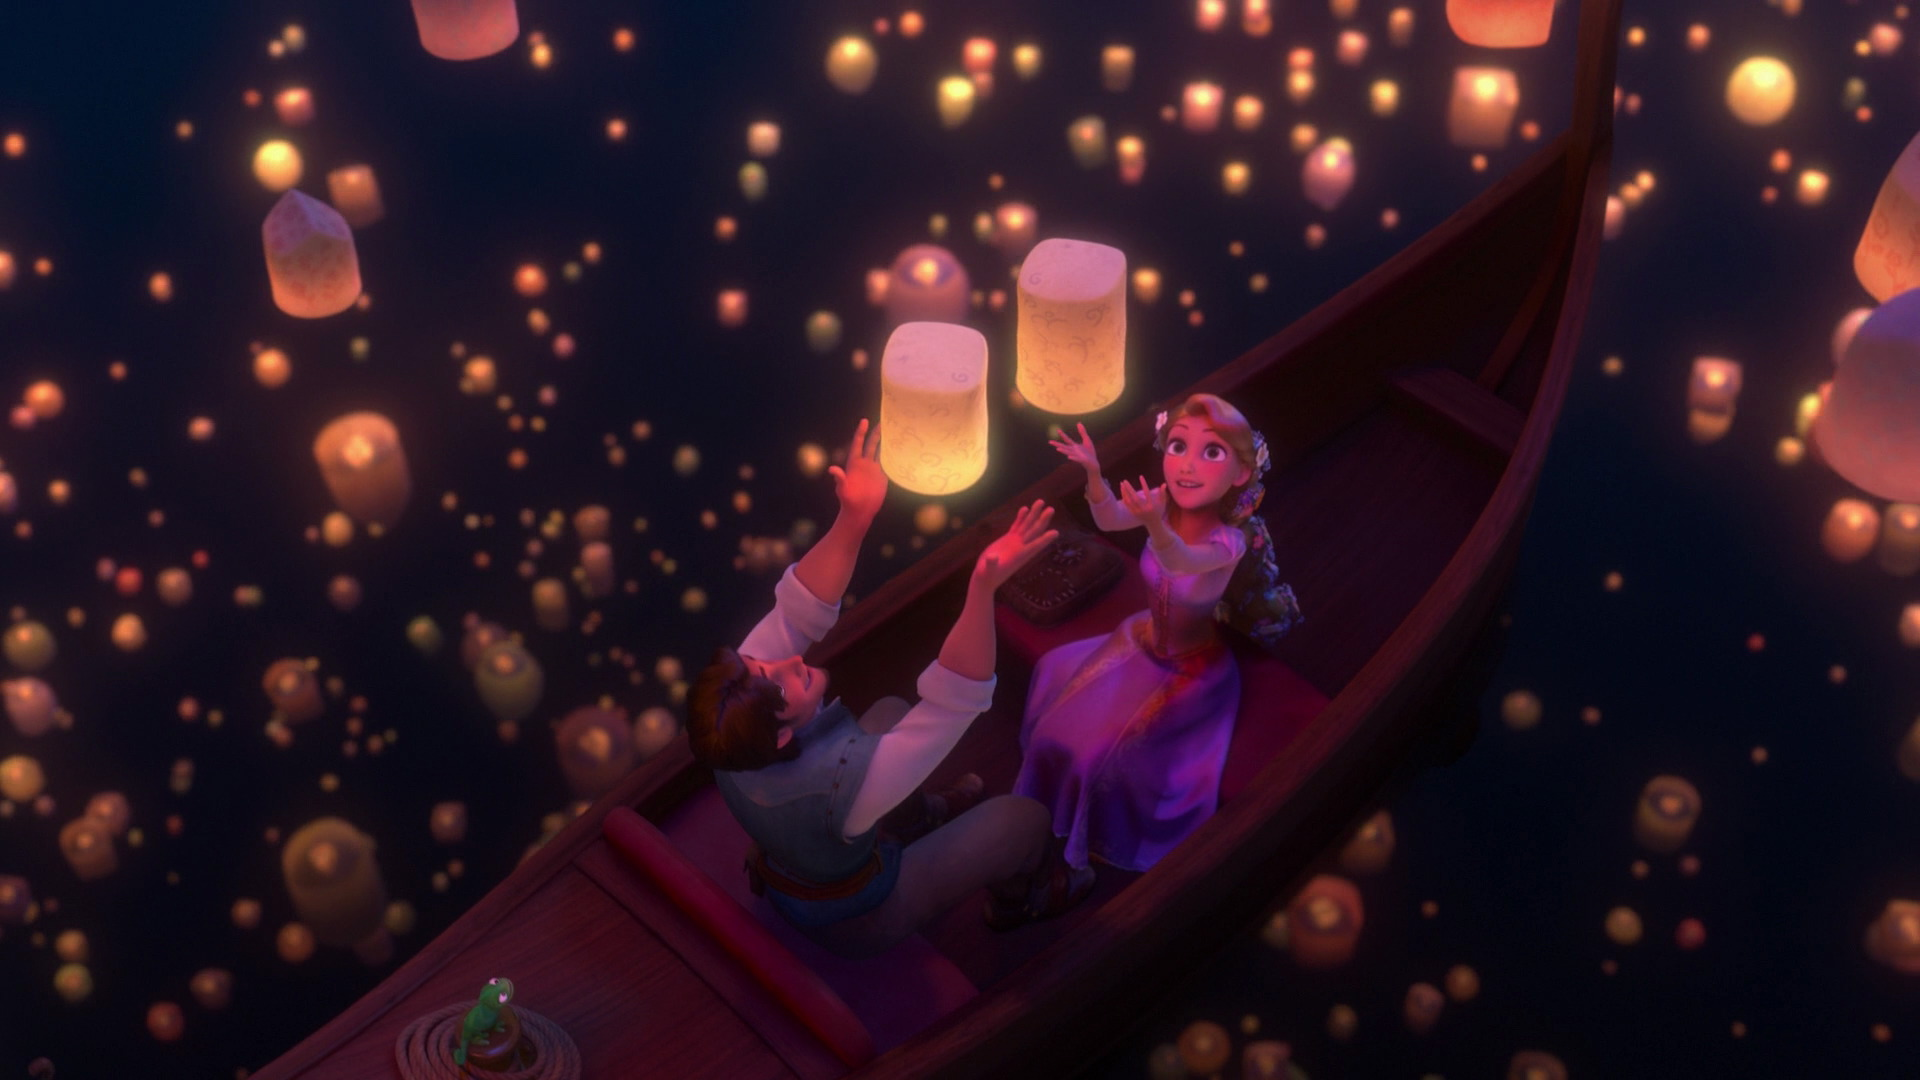 Tangled Disneyscreencaps Com 8071